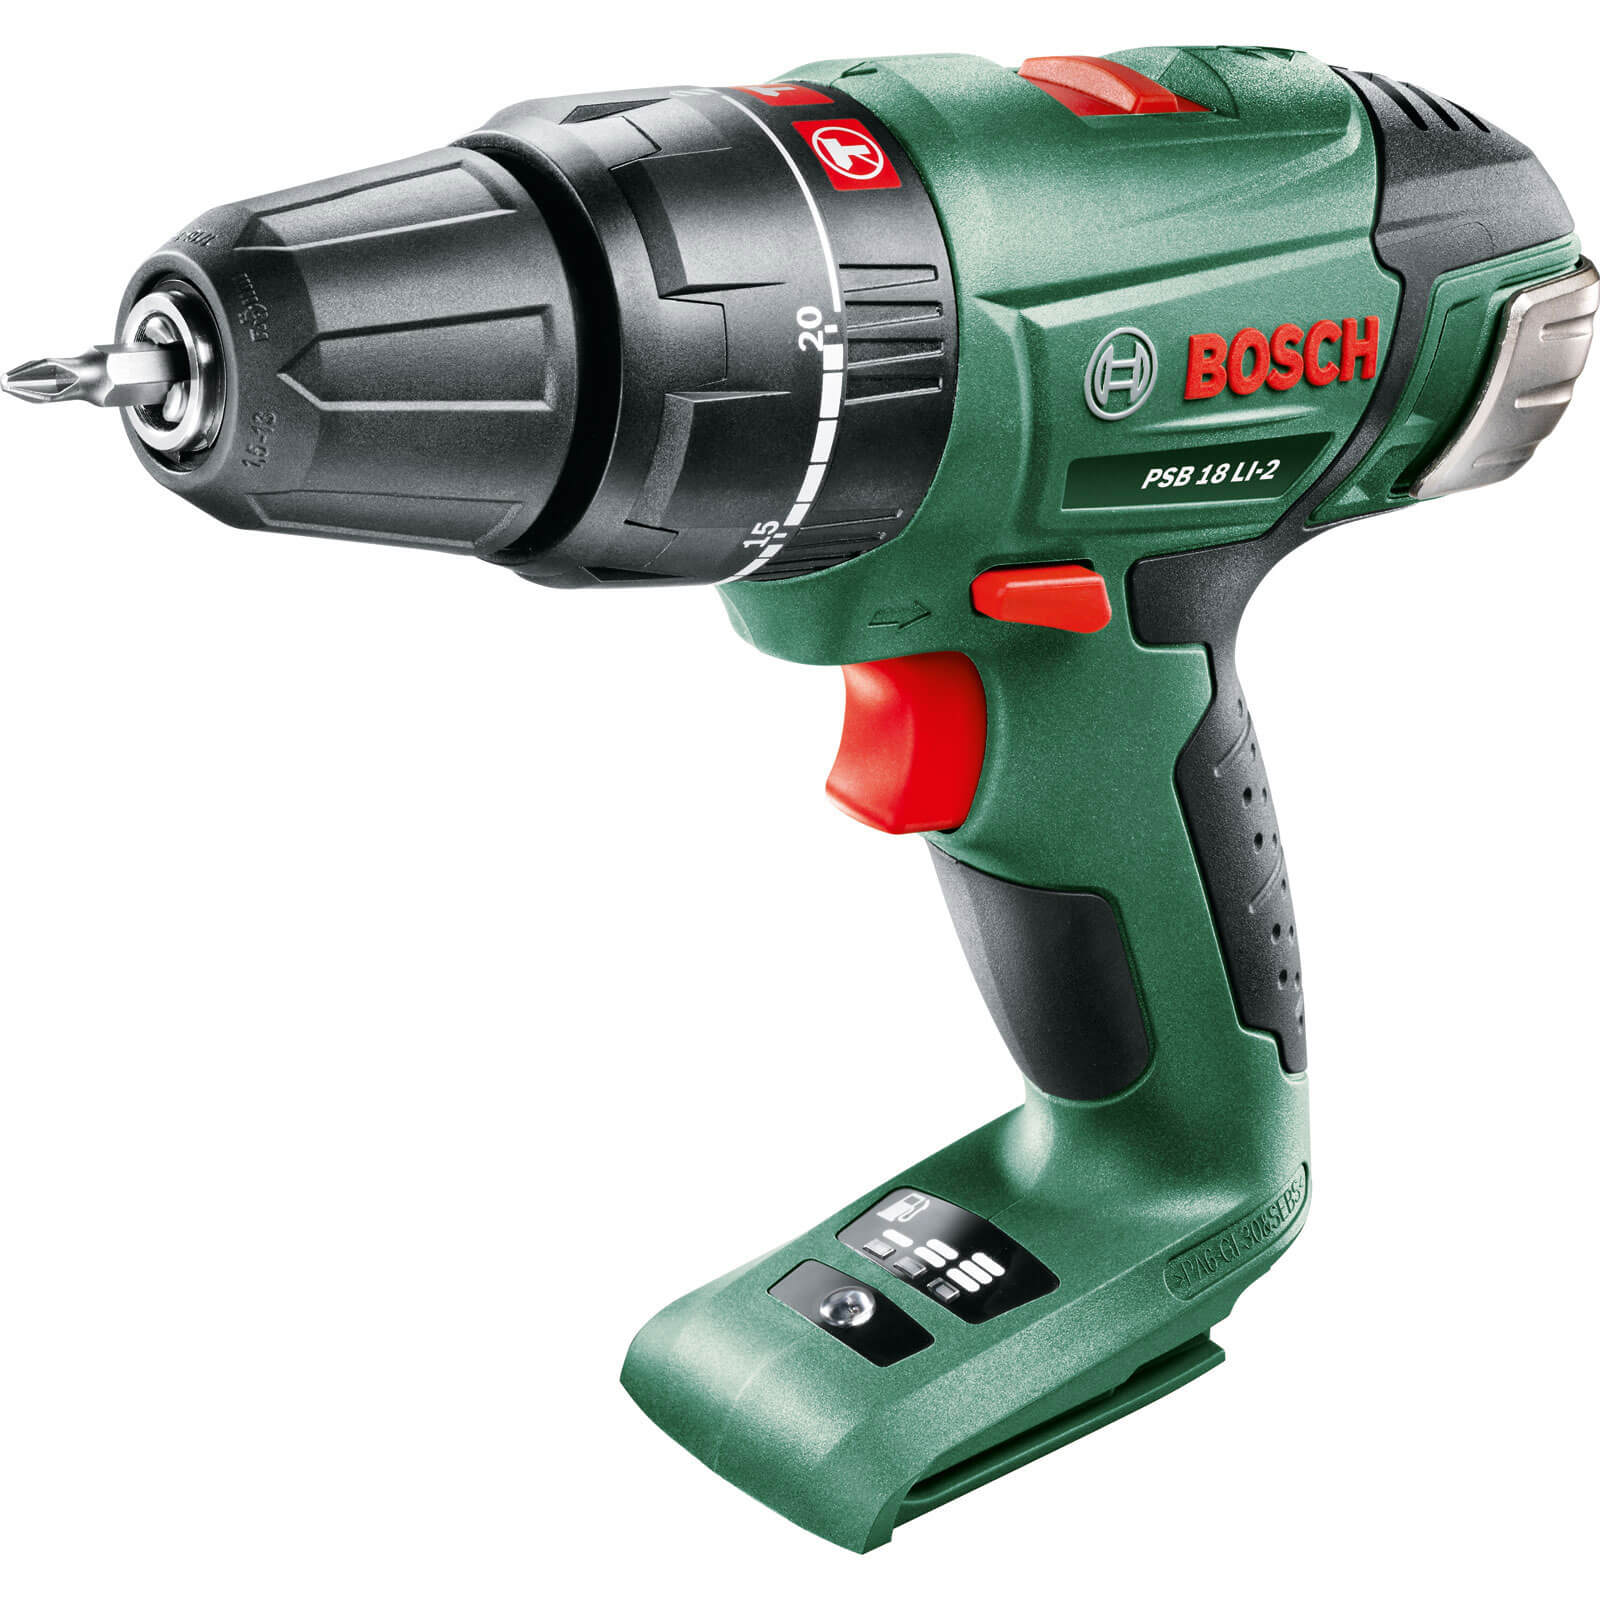 Bosch POWER4ALL PSB 18 LI-2 18v Cordless 2 Speed Combi Drill without Battery or Charger